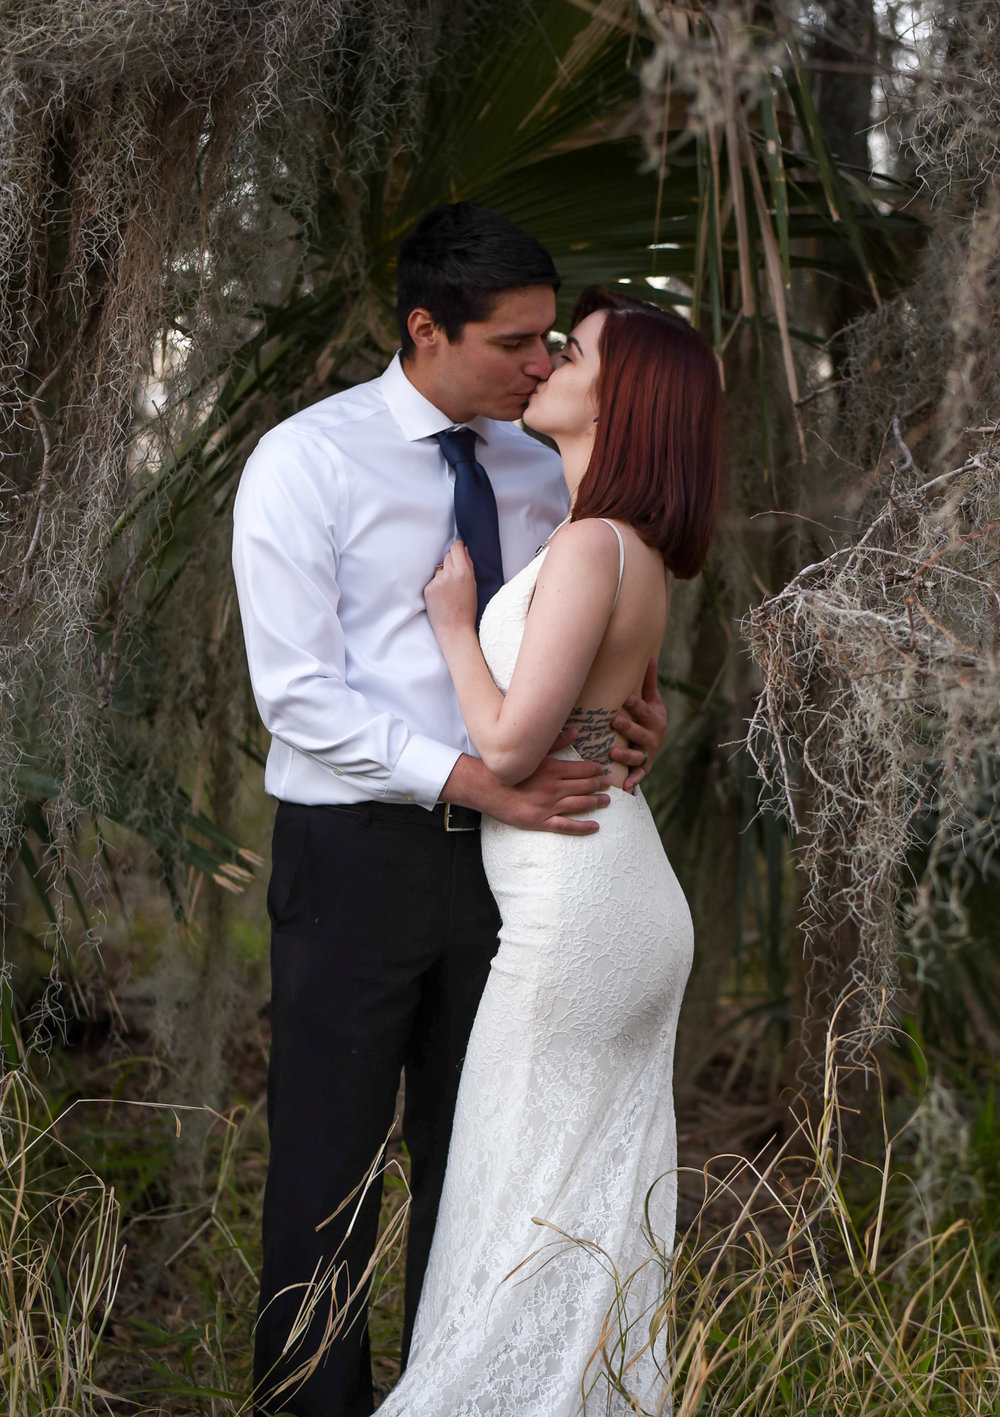 wedding photo bride and groom kiss